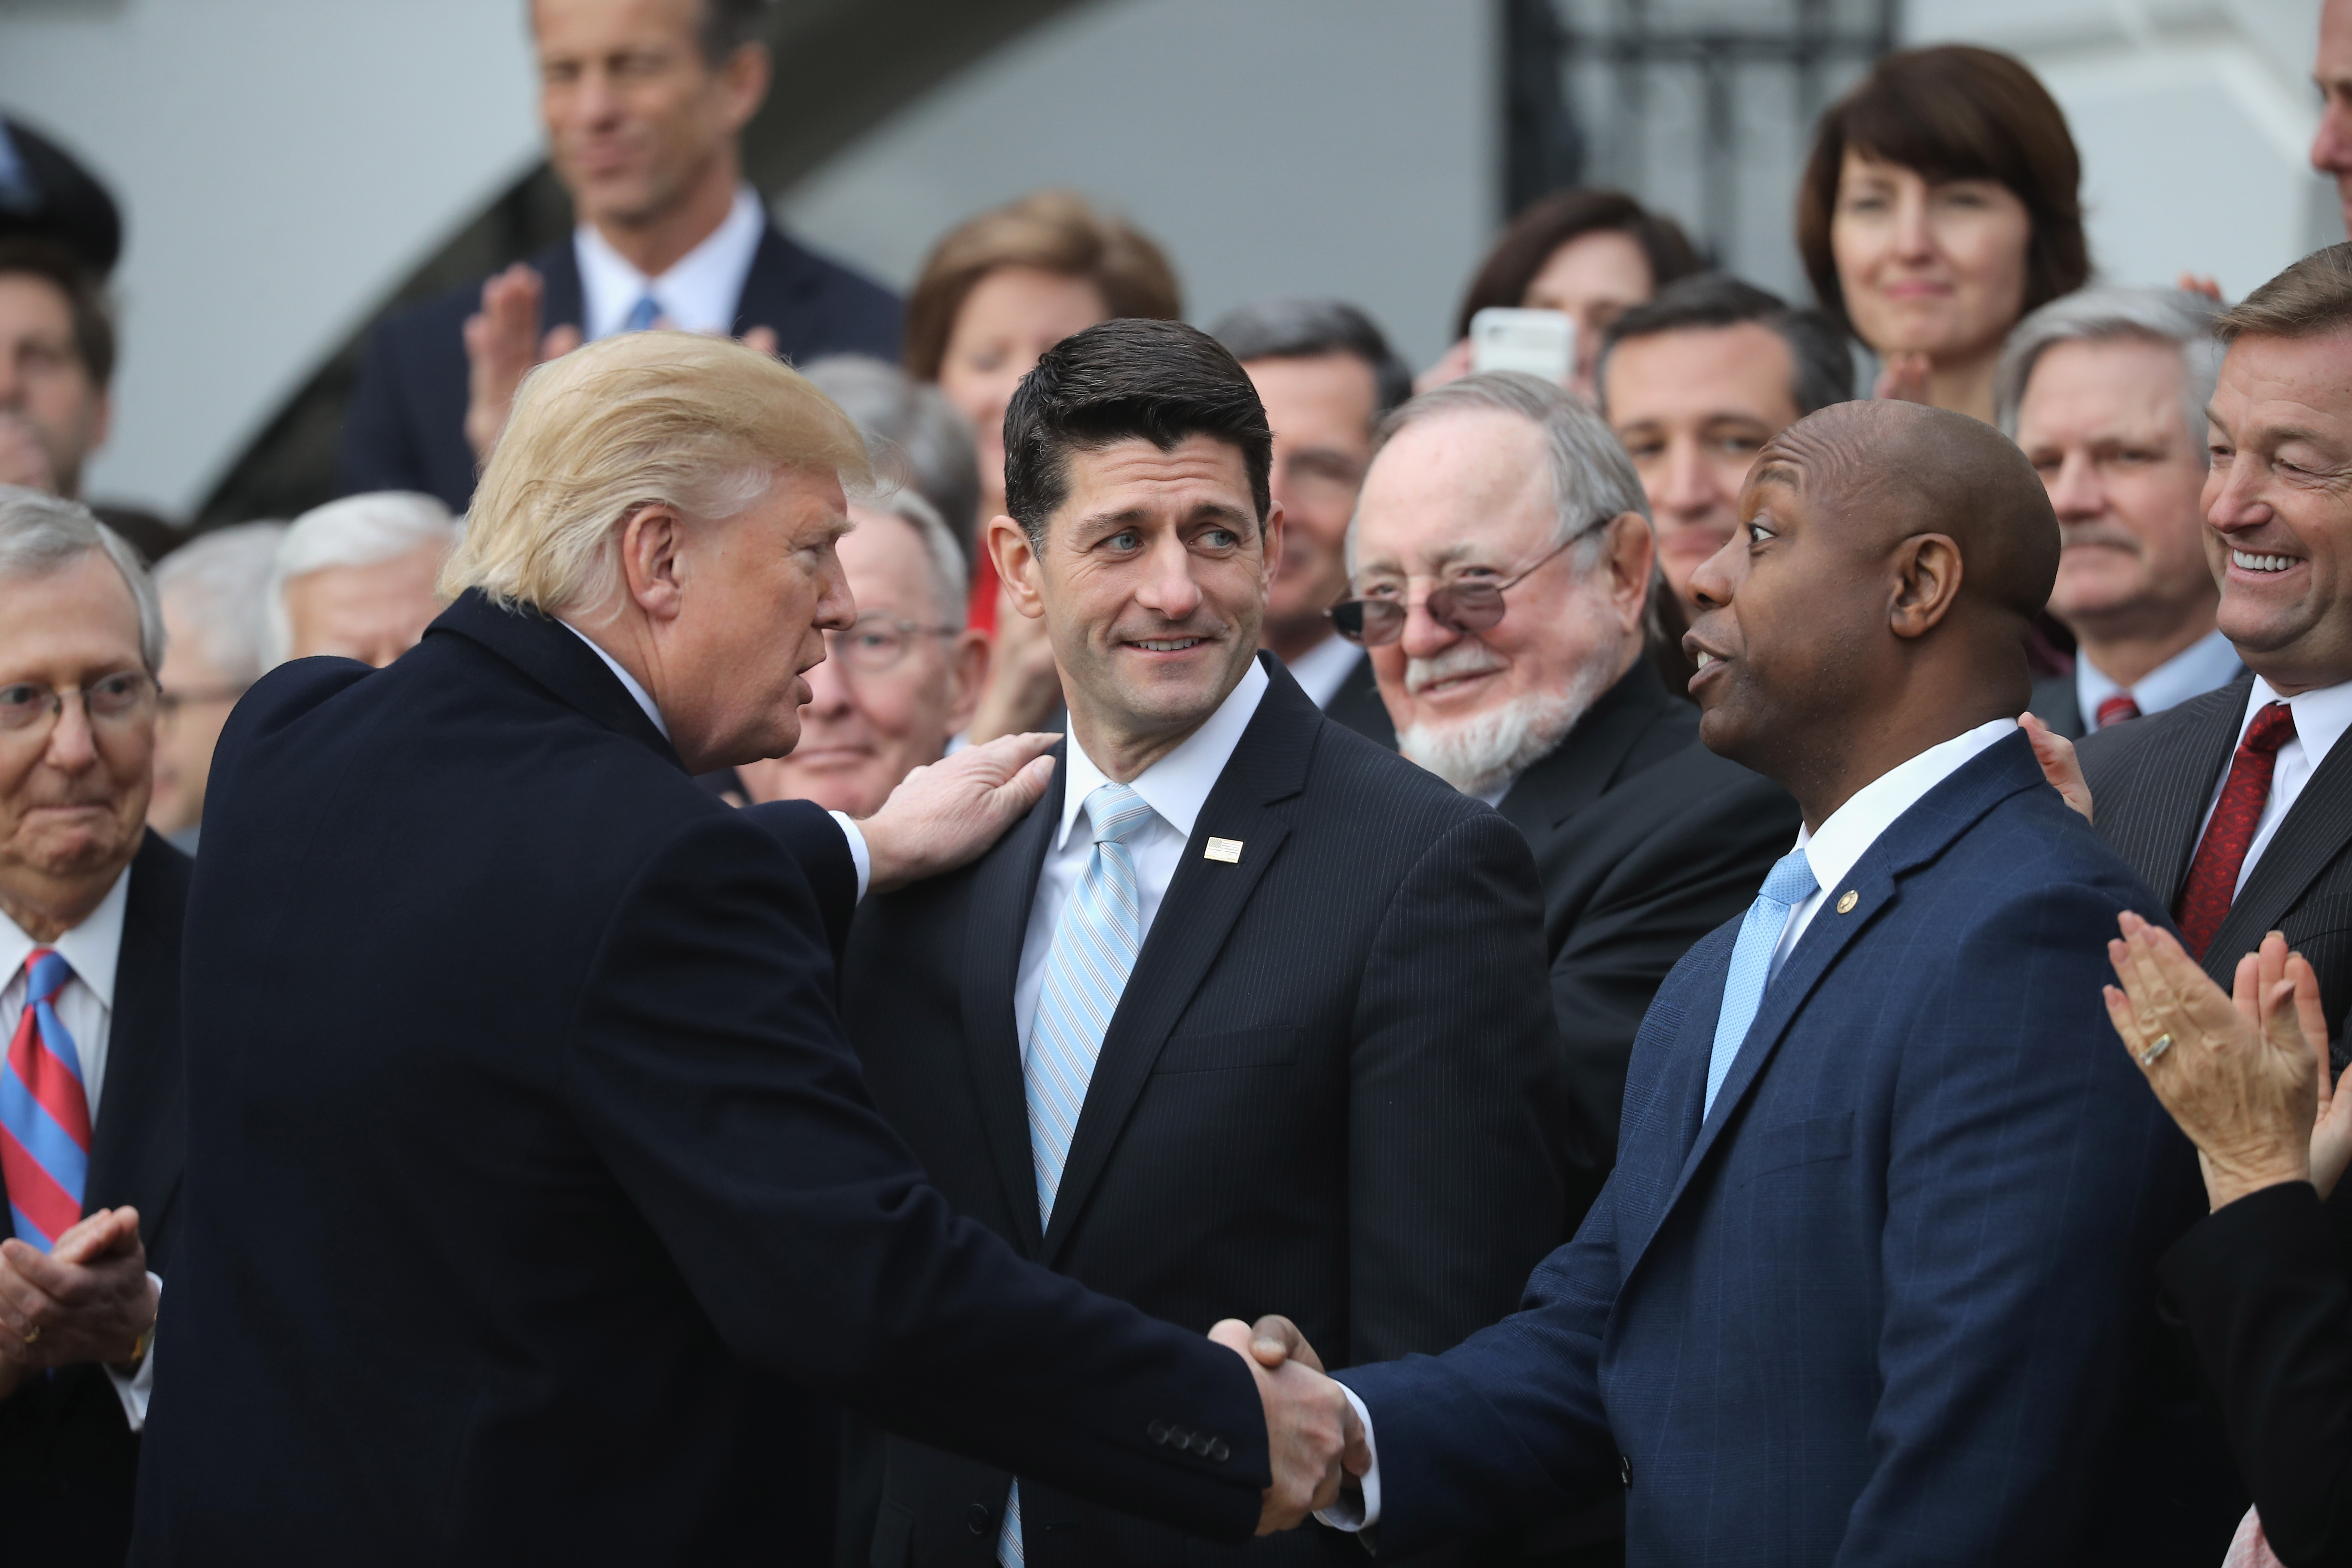 U.S. President Donald Trump congratulates Speaker of the House Paul Ryan (C) and Sen. Tim Scott at an event celebrating Congress passing the Tax Cuts and Jobs Act with Republican members of the House and Senate on the South Lawn of the White House on December 20, 2017 in Washington, DC. Chip Somodevilla/Getty Images